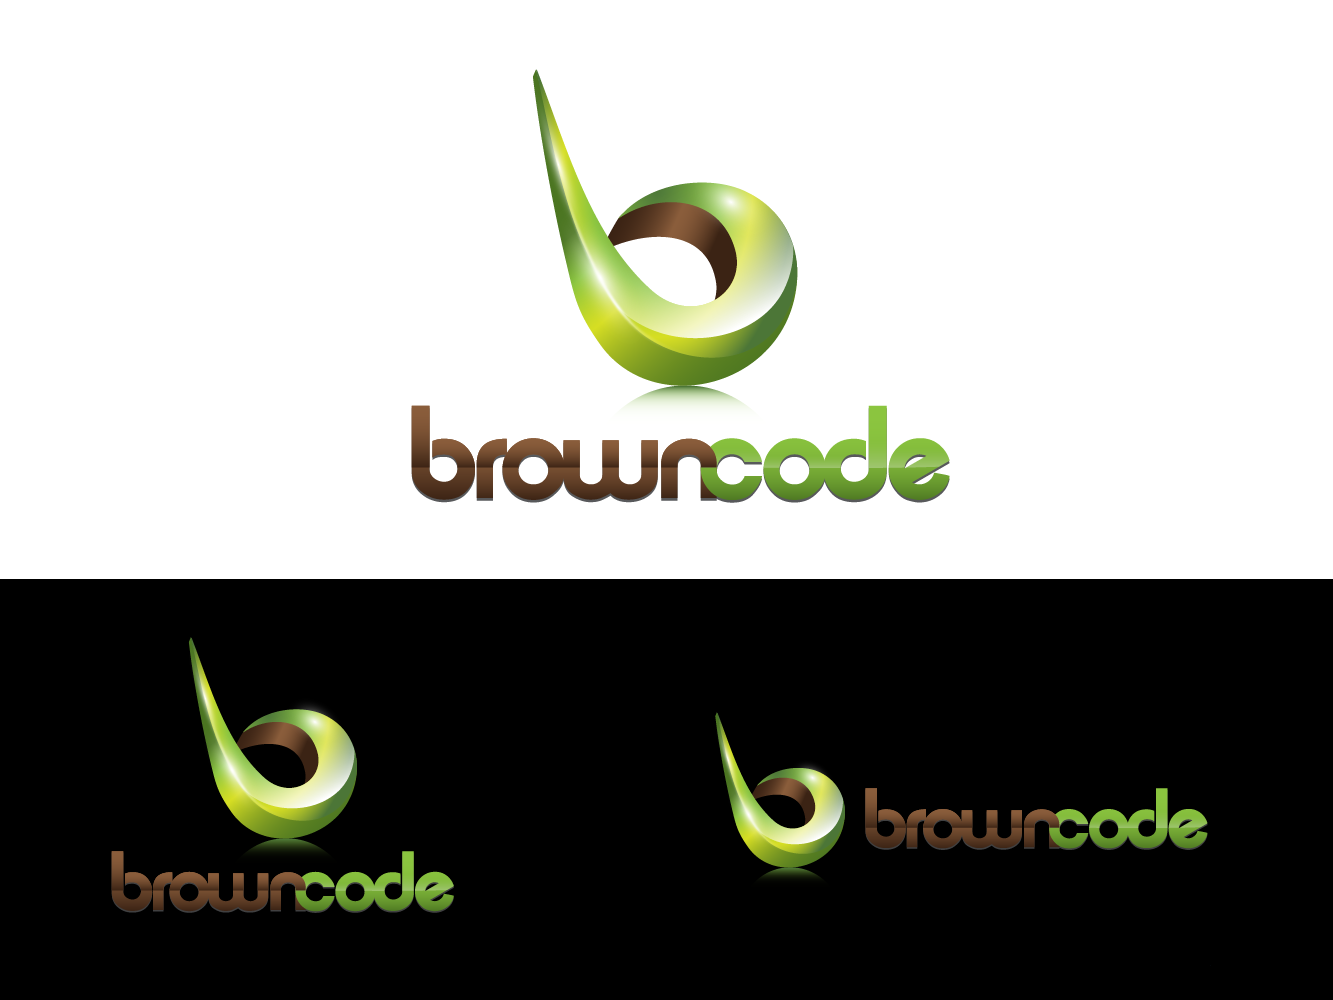 Logo Design by vwArt - Entry No. 167 in the Logo Design Contest New Logo Design for Brown Code.